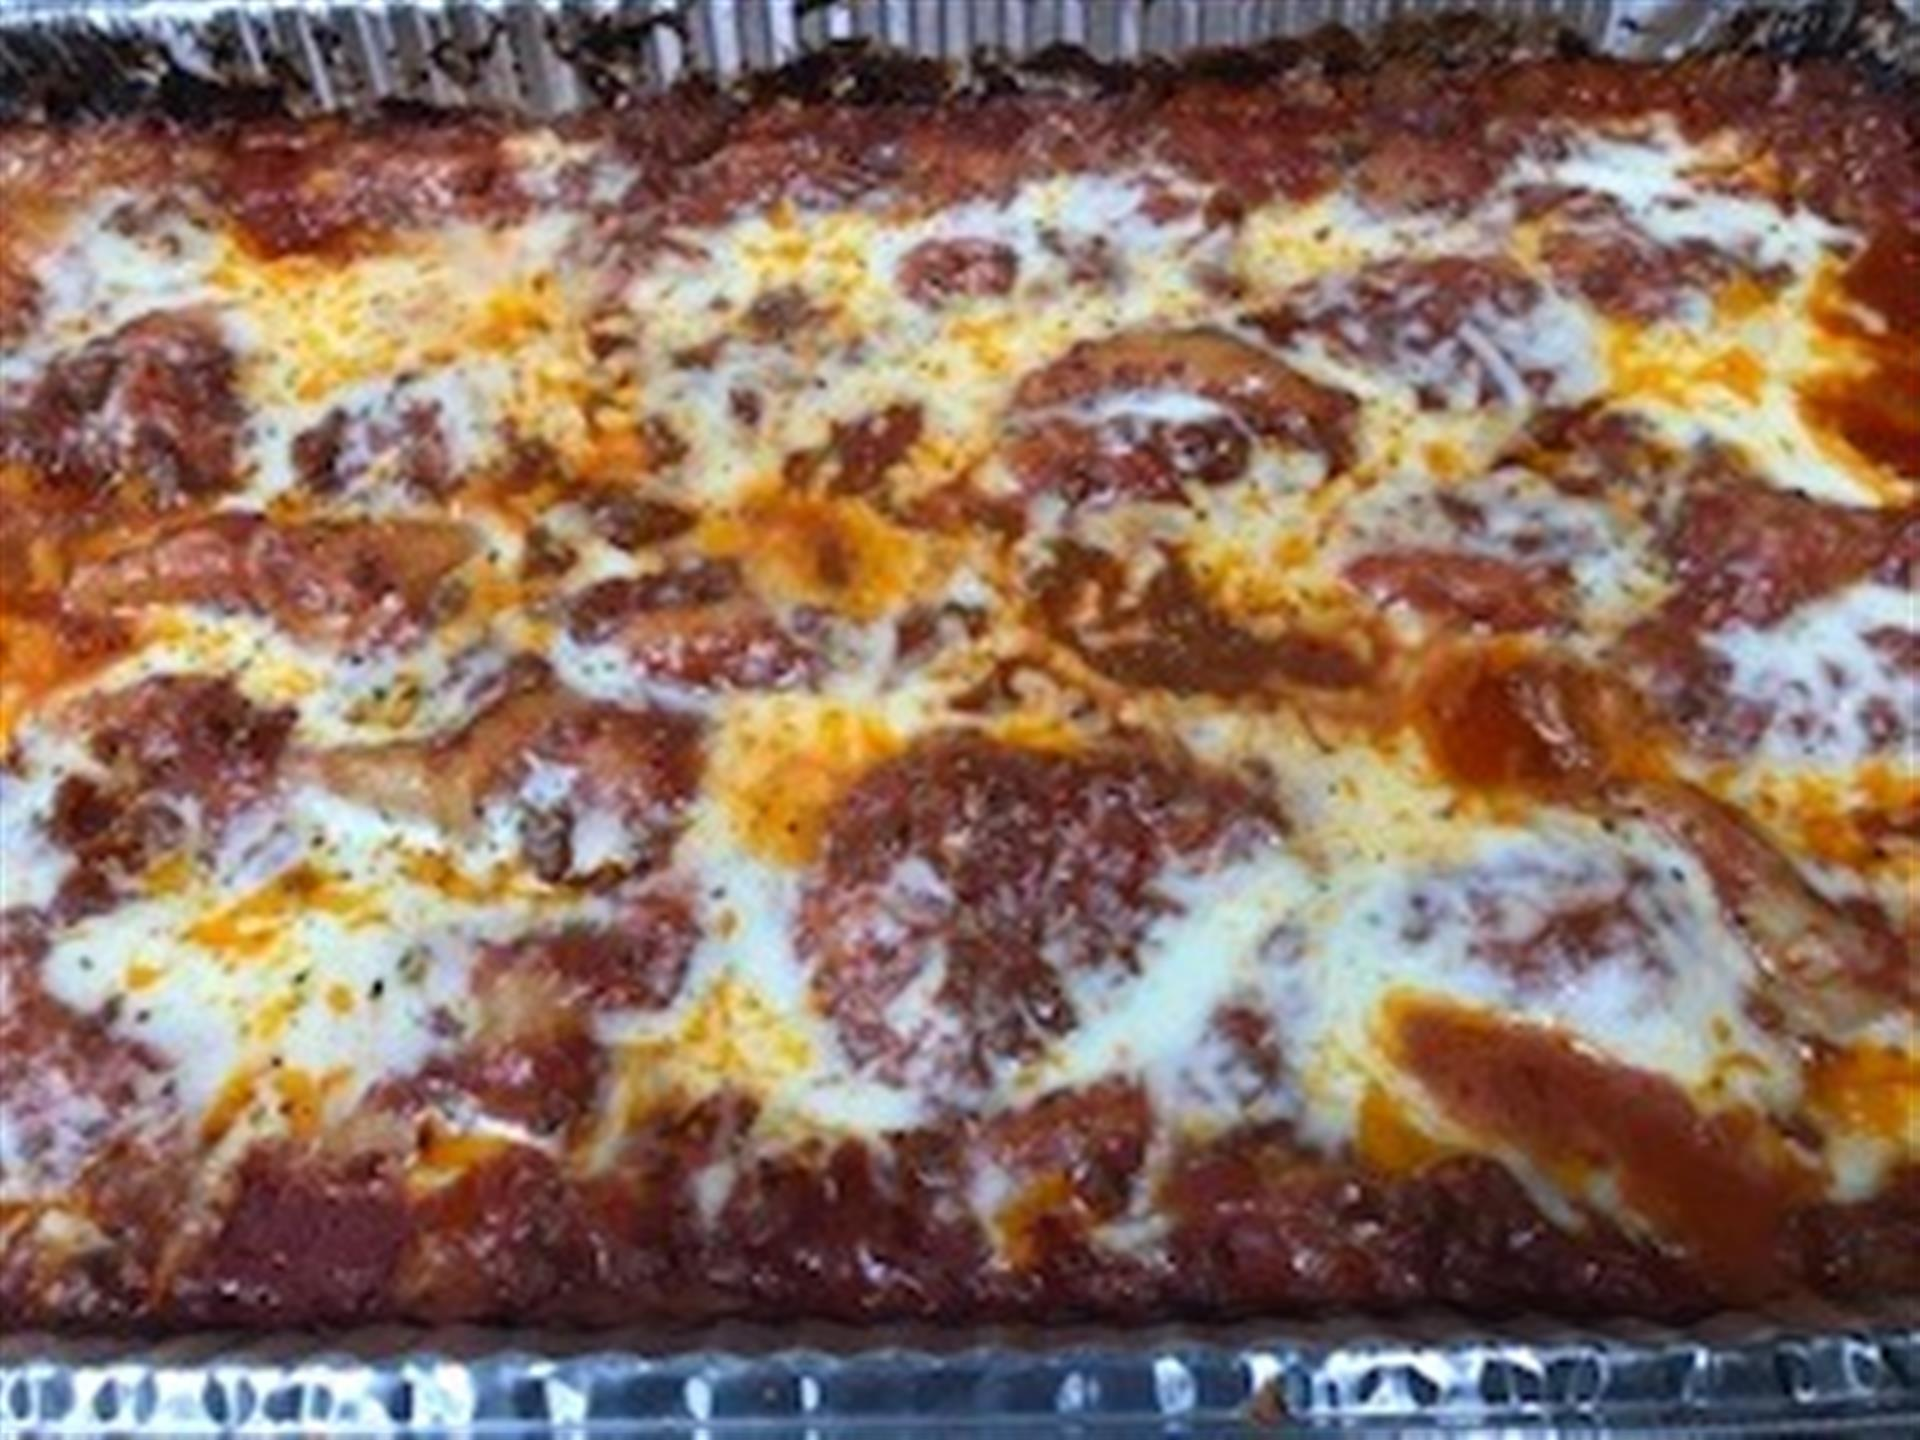 Tray of lasagna topped with cheese.